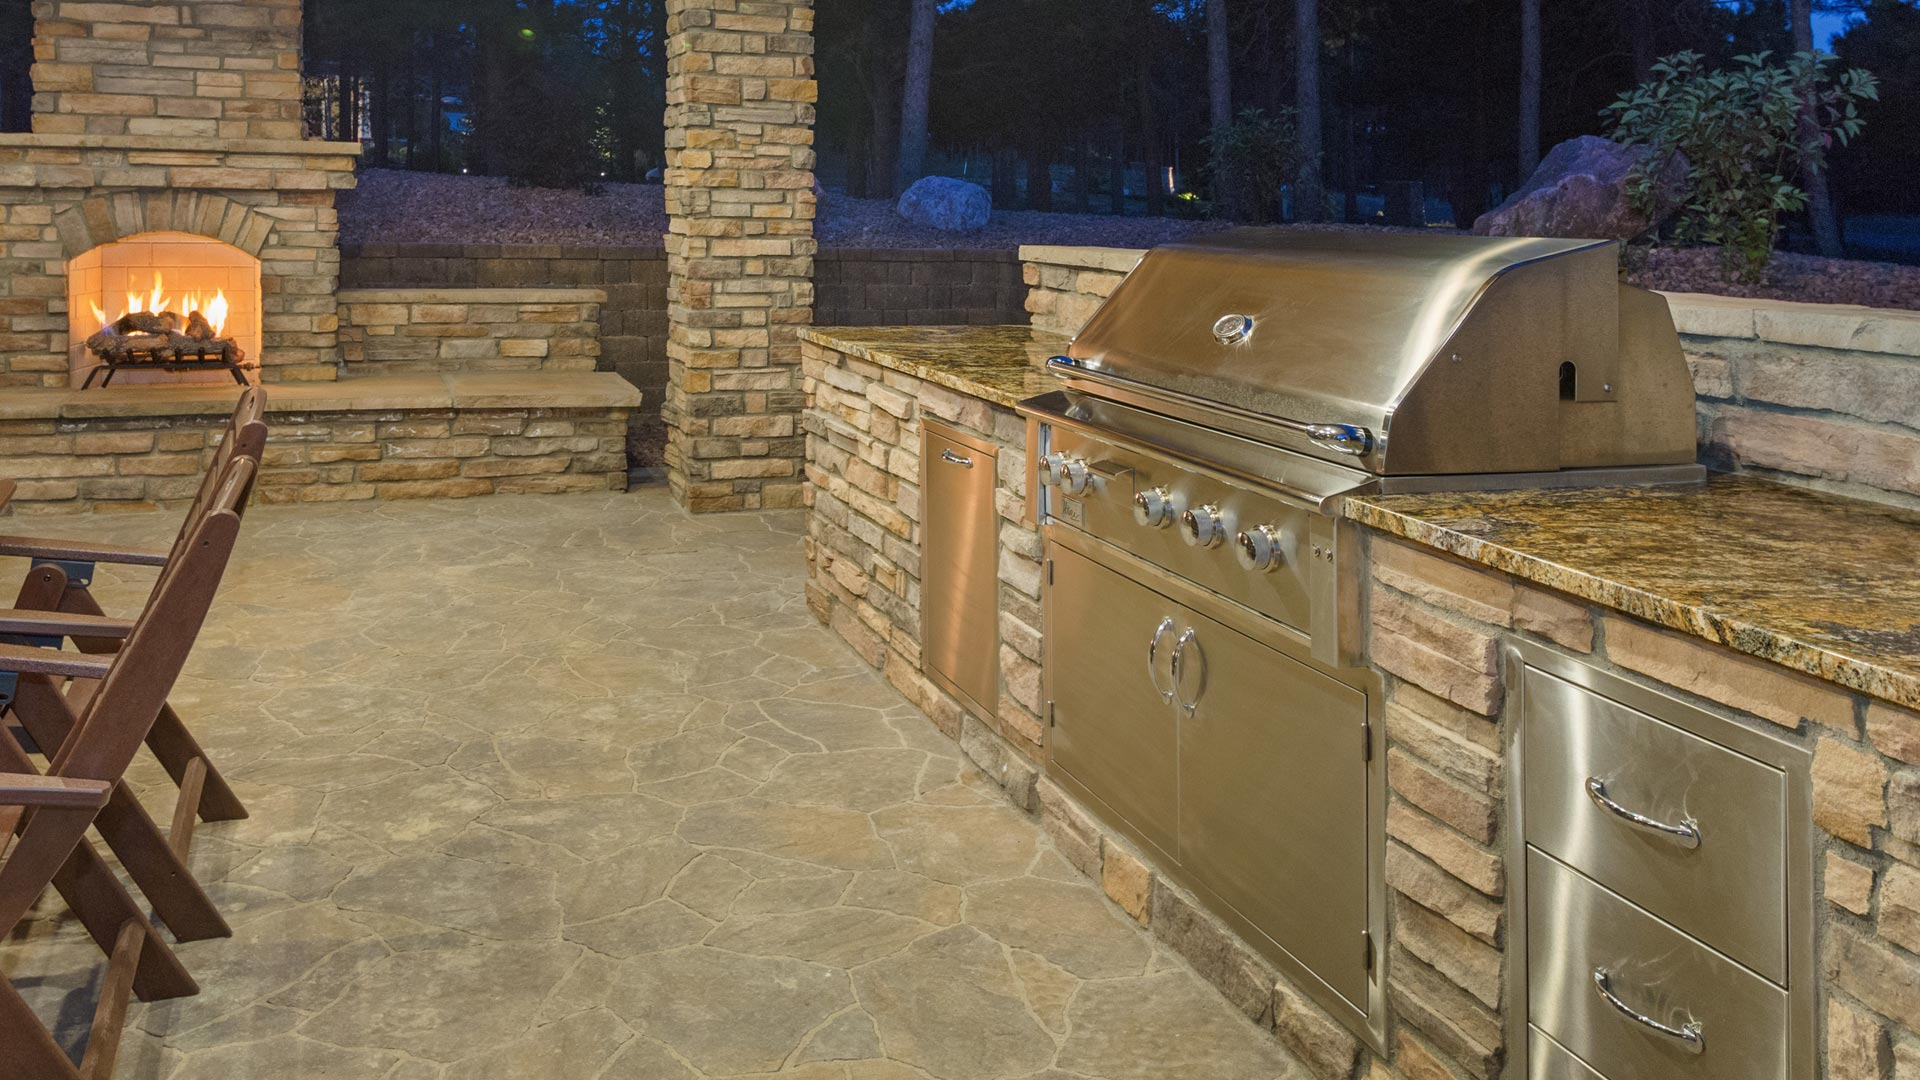 Outdoor kitchen with fireplace built at a home in Fraser, CO.